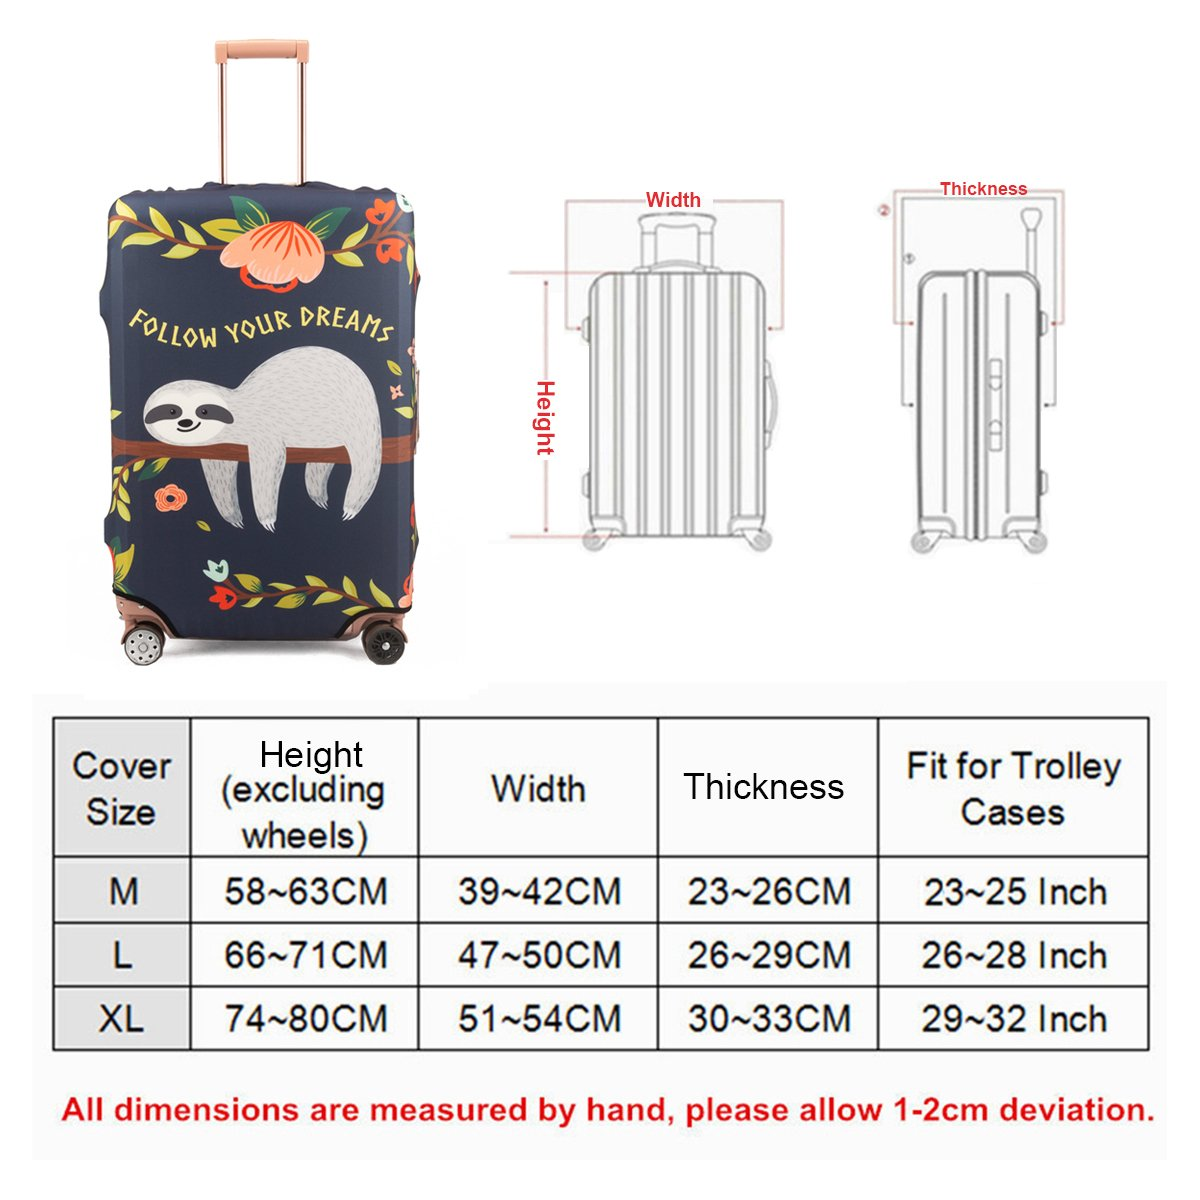 Madifennina Spandex Travel Luggage Protector Suitcase Cover Fit 23-32 Inch Luggage (sloth, XL) by Madifennina (Image #7)